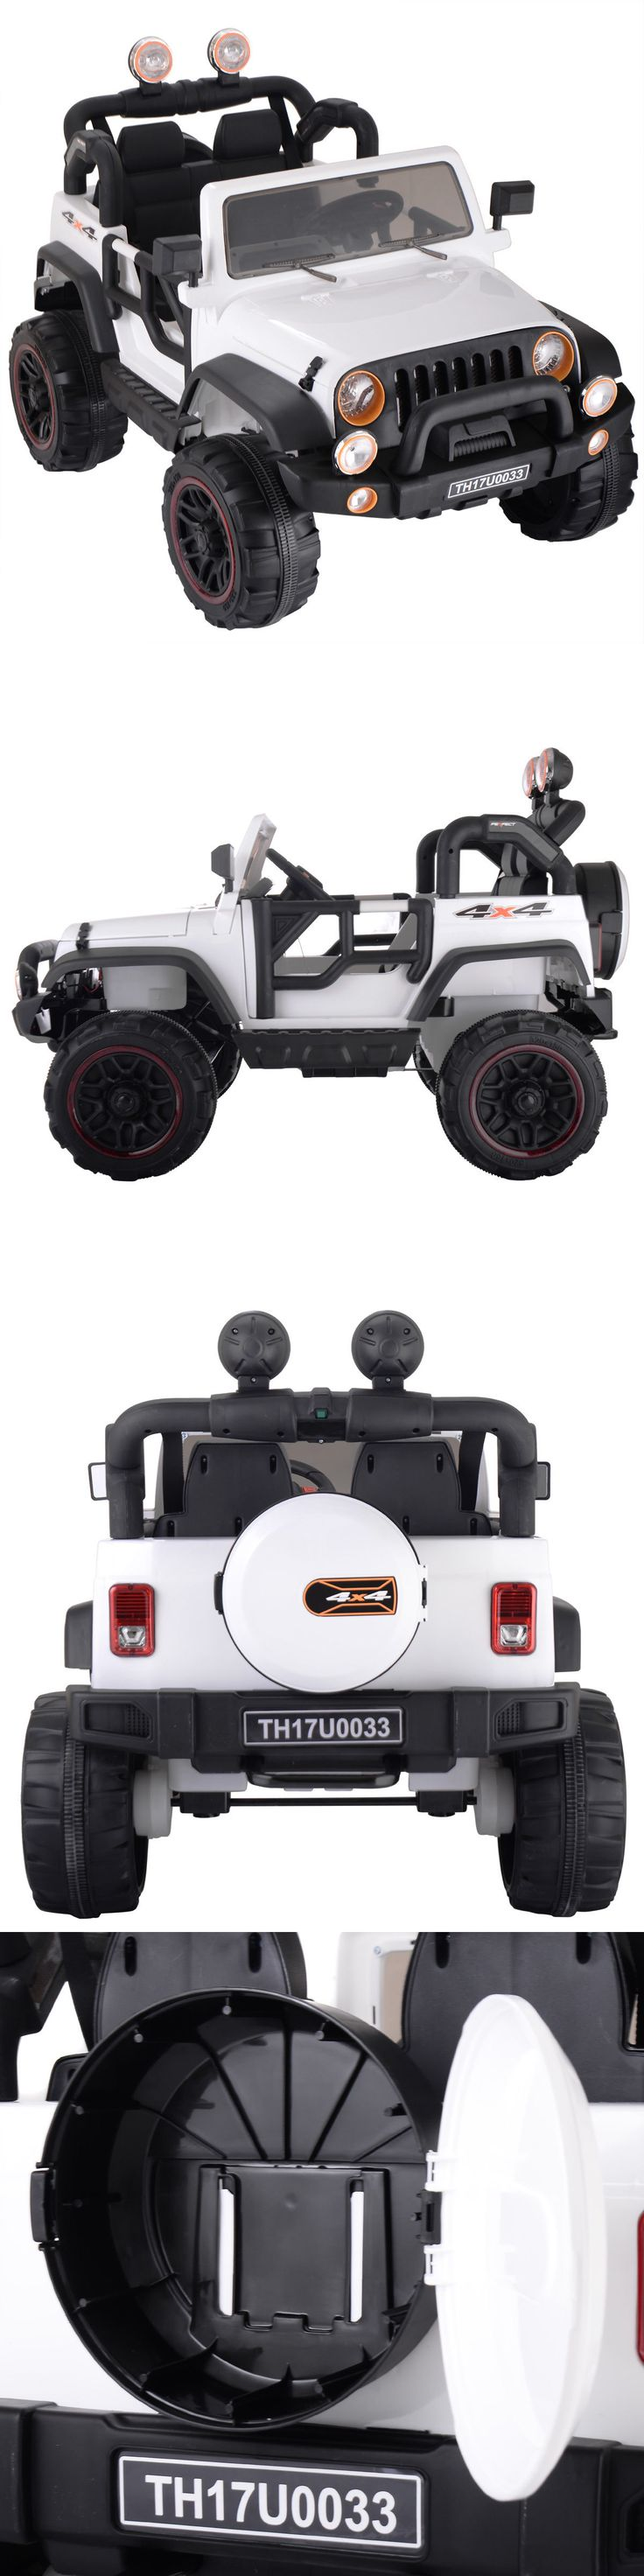 Ride On Toys and Accessories 145944: 12V Jeep Style Kids Ride On Battery Powered Electric Car W Remote Control White -> BUY IT NOW ONLY: $248.99 on eBay!